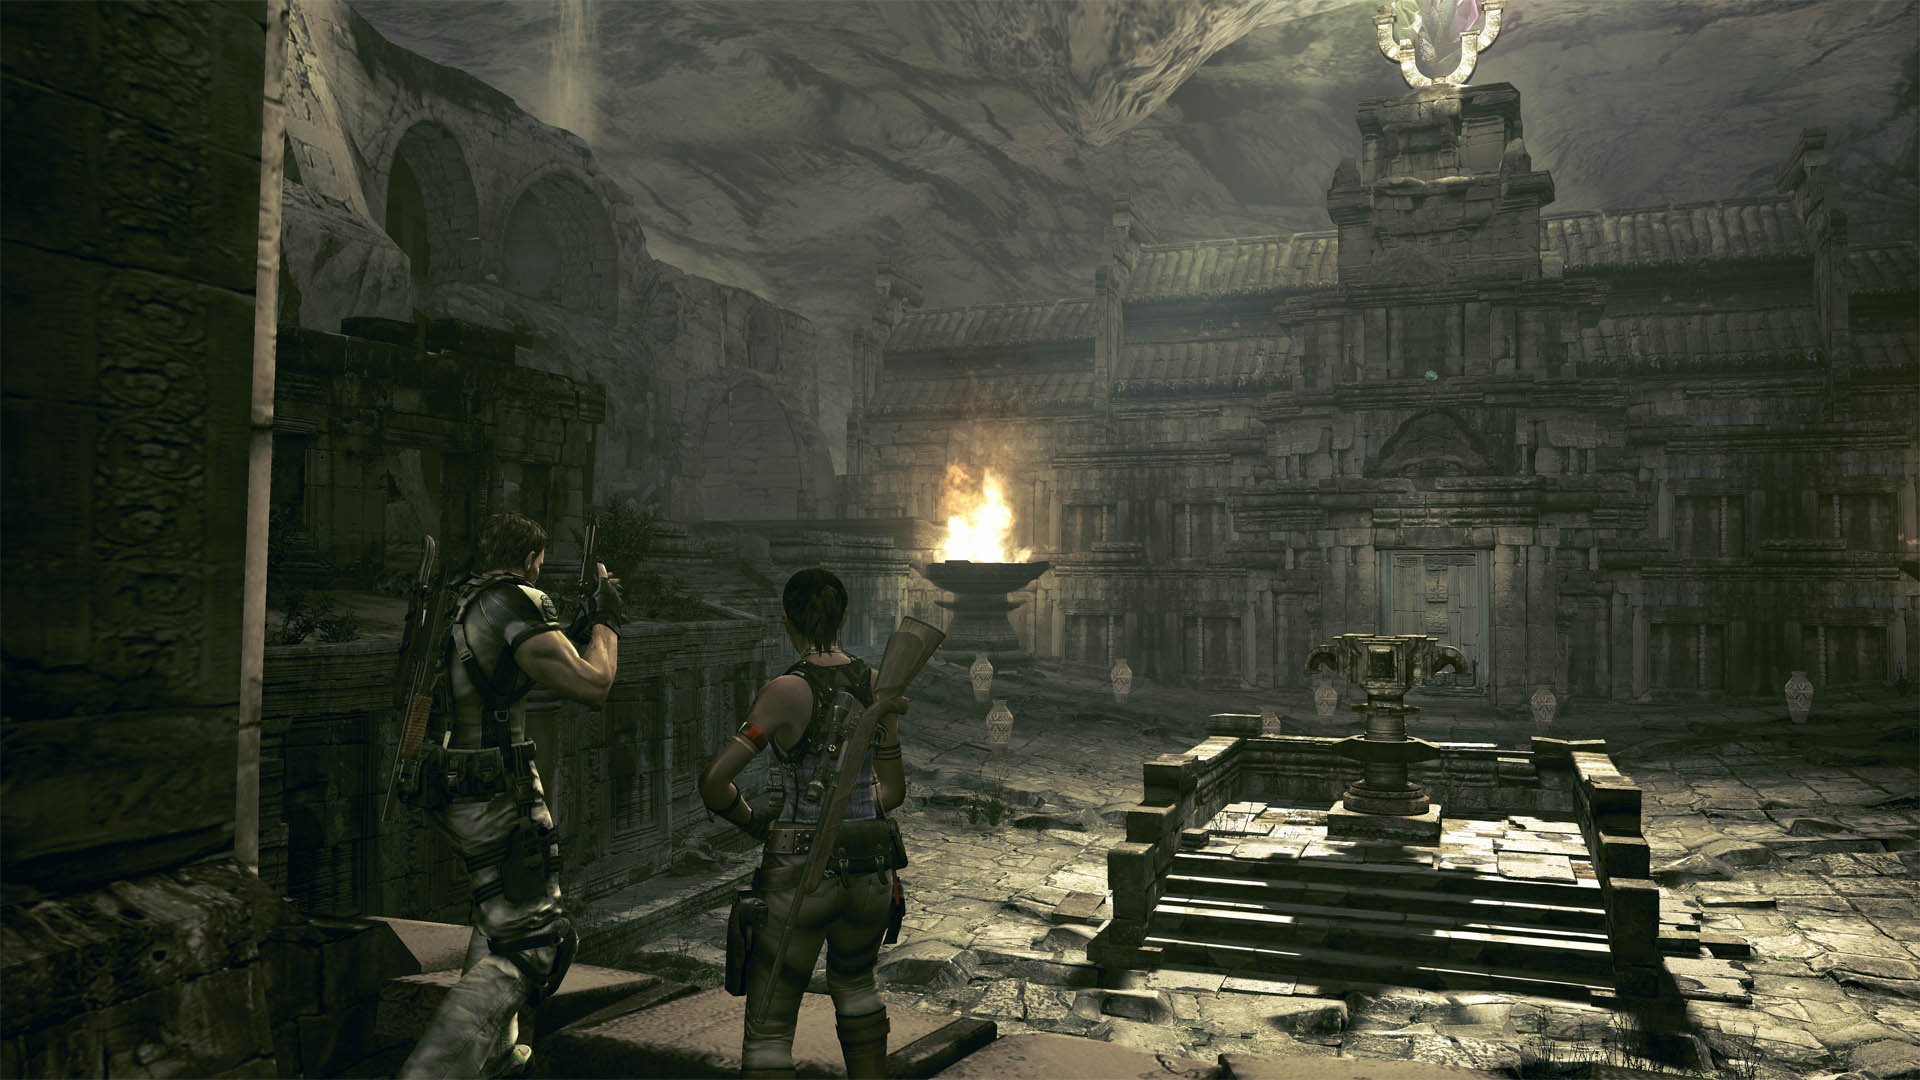 resident evil 5 android apk game